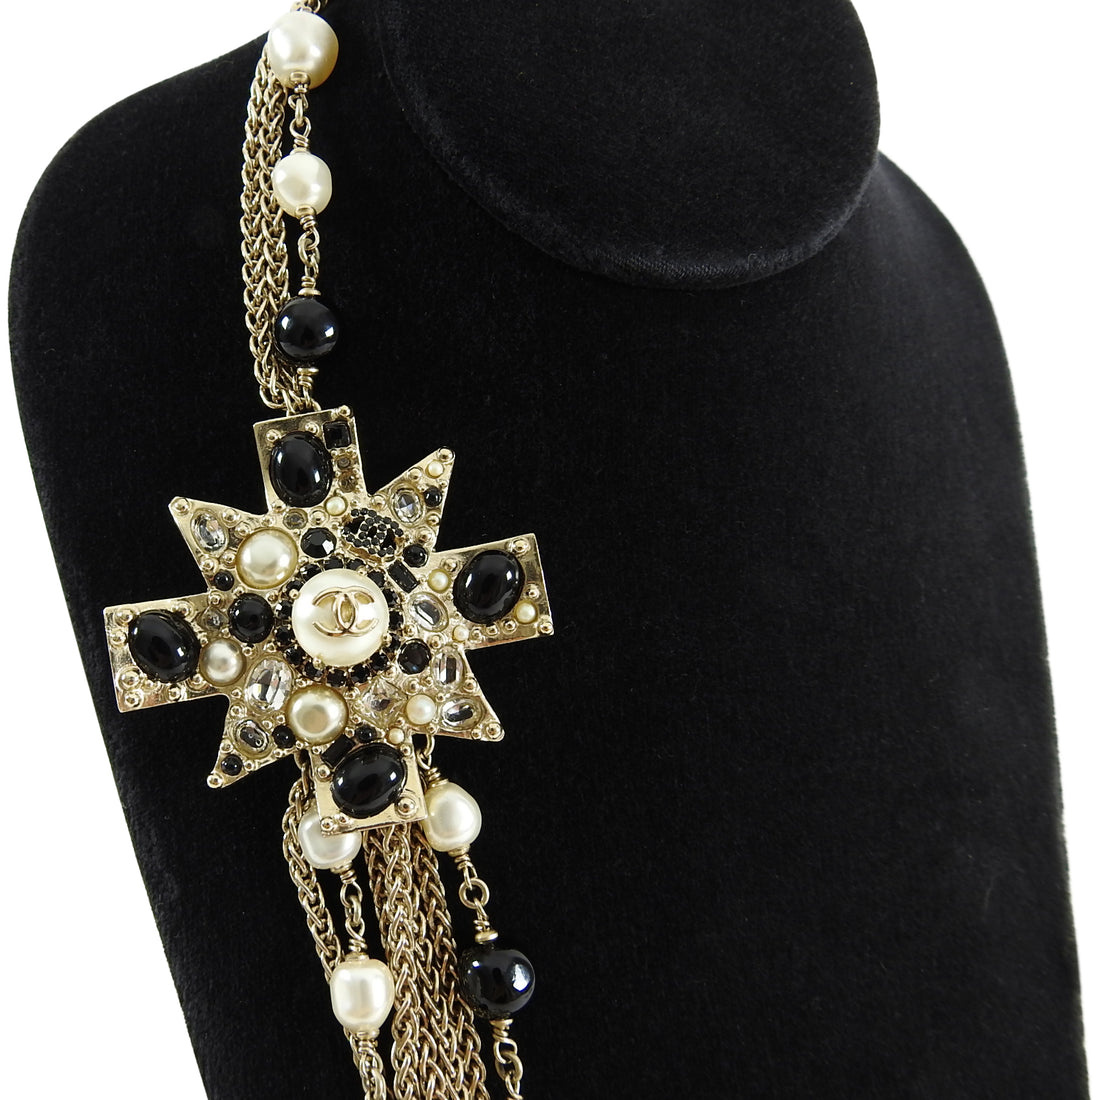 CHANEL 11P gold multi-strand Maltese Cross Necklace with Black and Pearl Beads